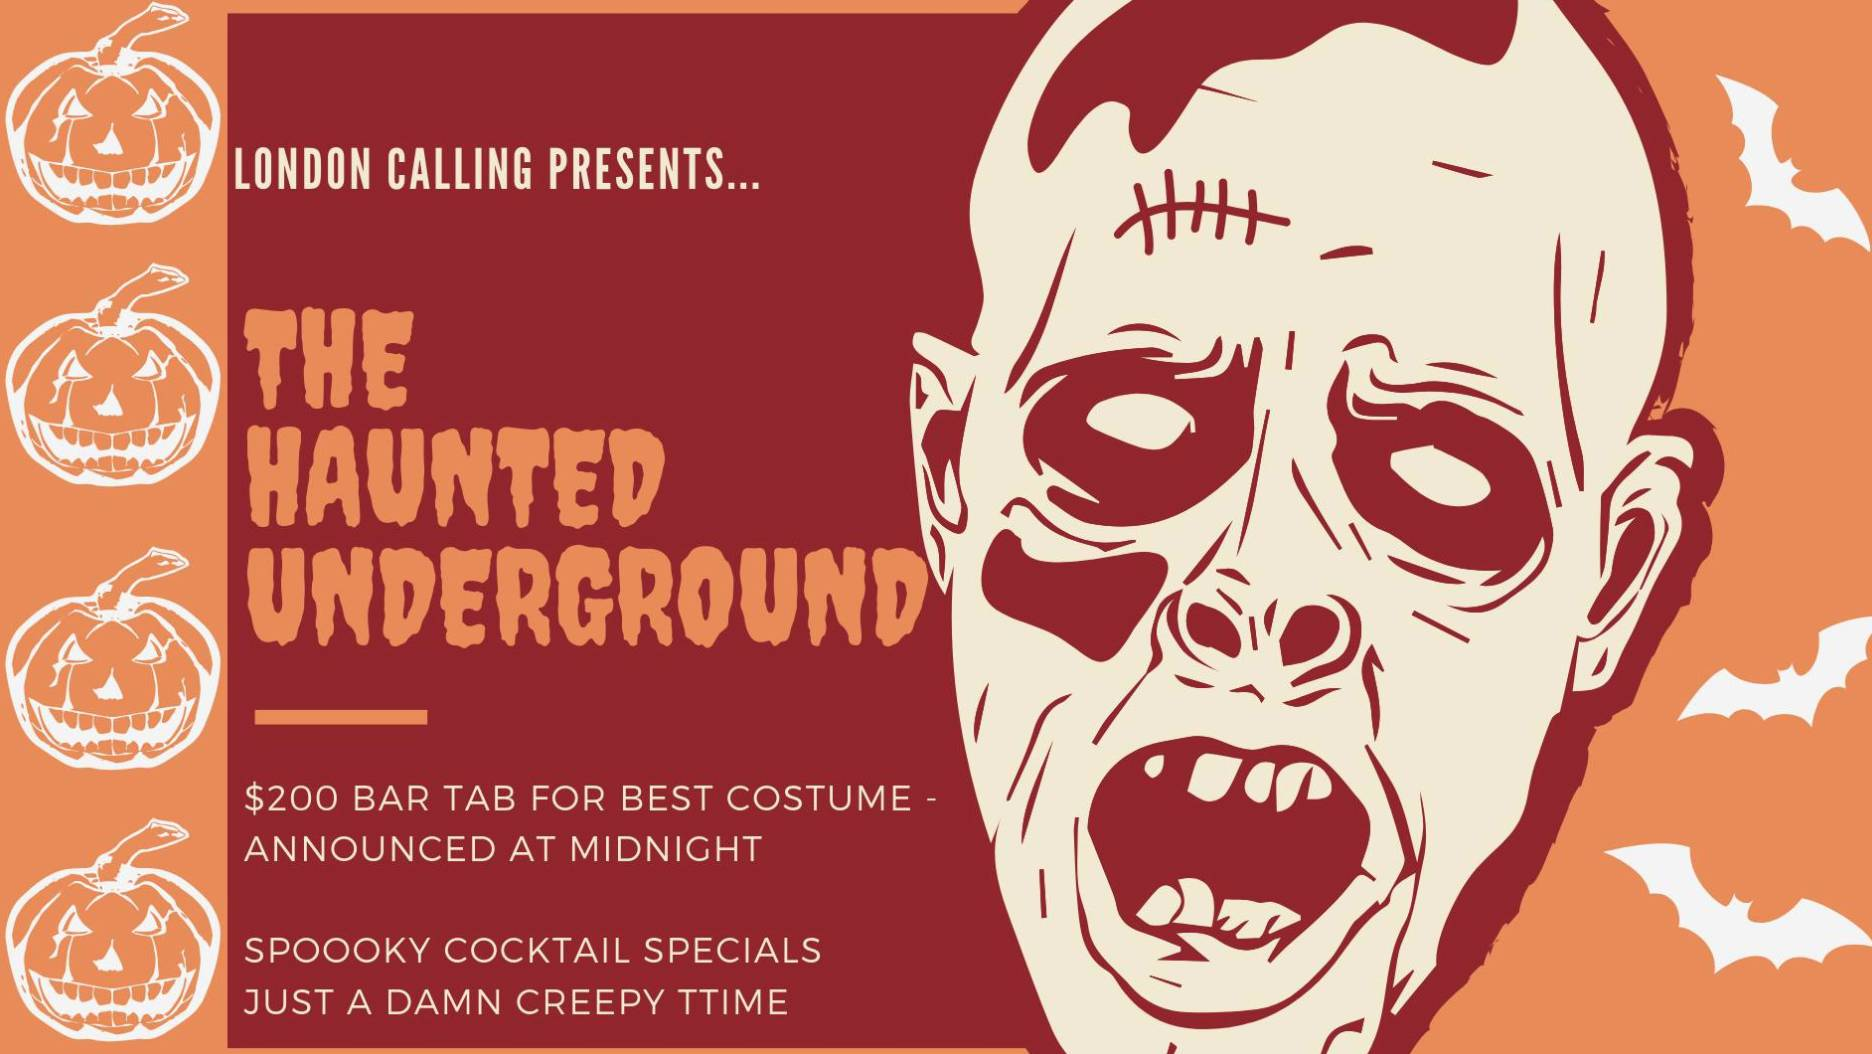 The Haunted Underground!